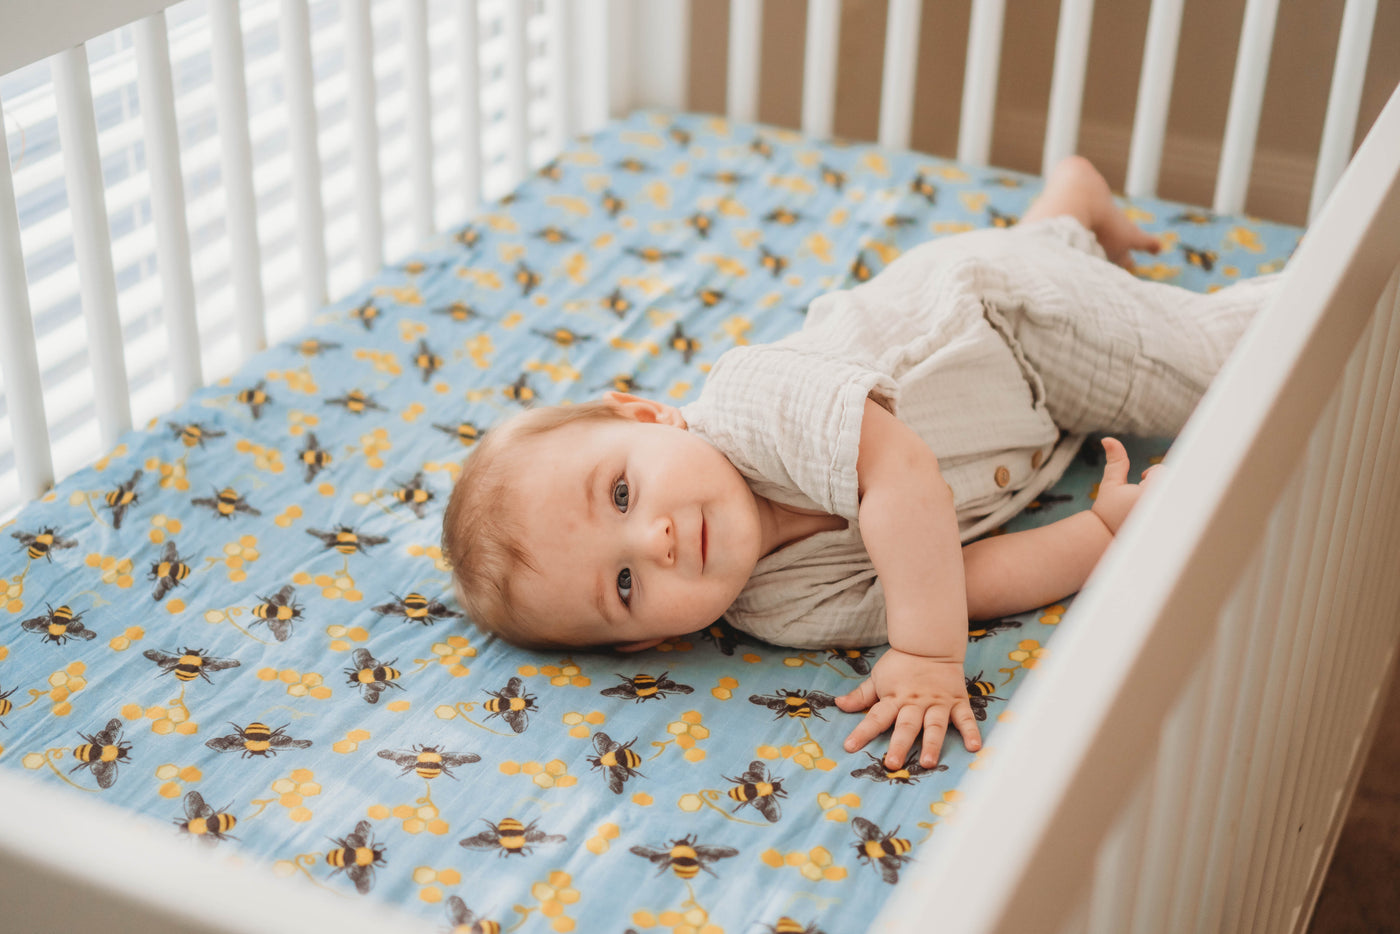 Baby with blue bee and honeycomb boho vintage crib sheet in nursery